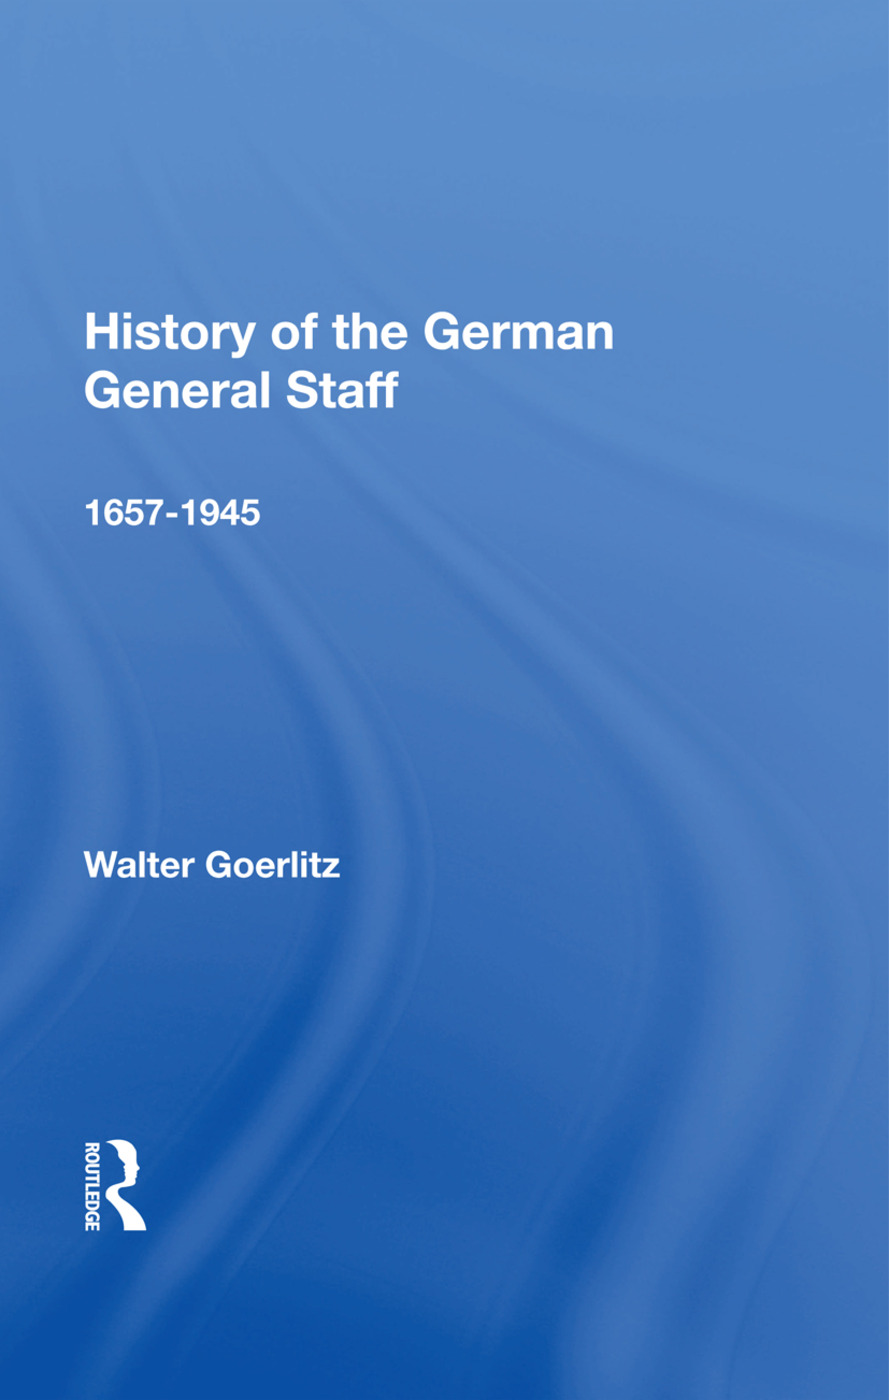 History Of The German General Staff 1657-1945 book cover